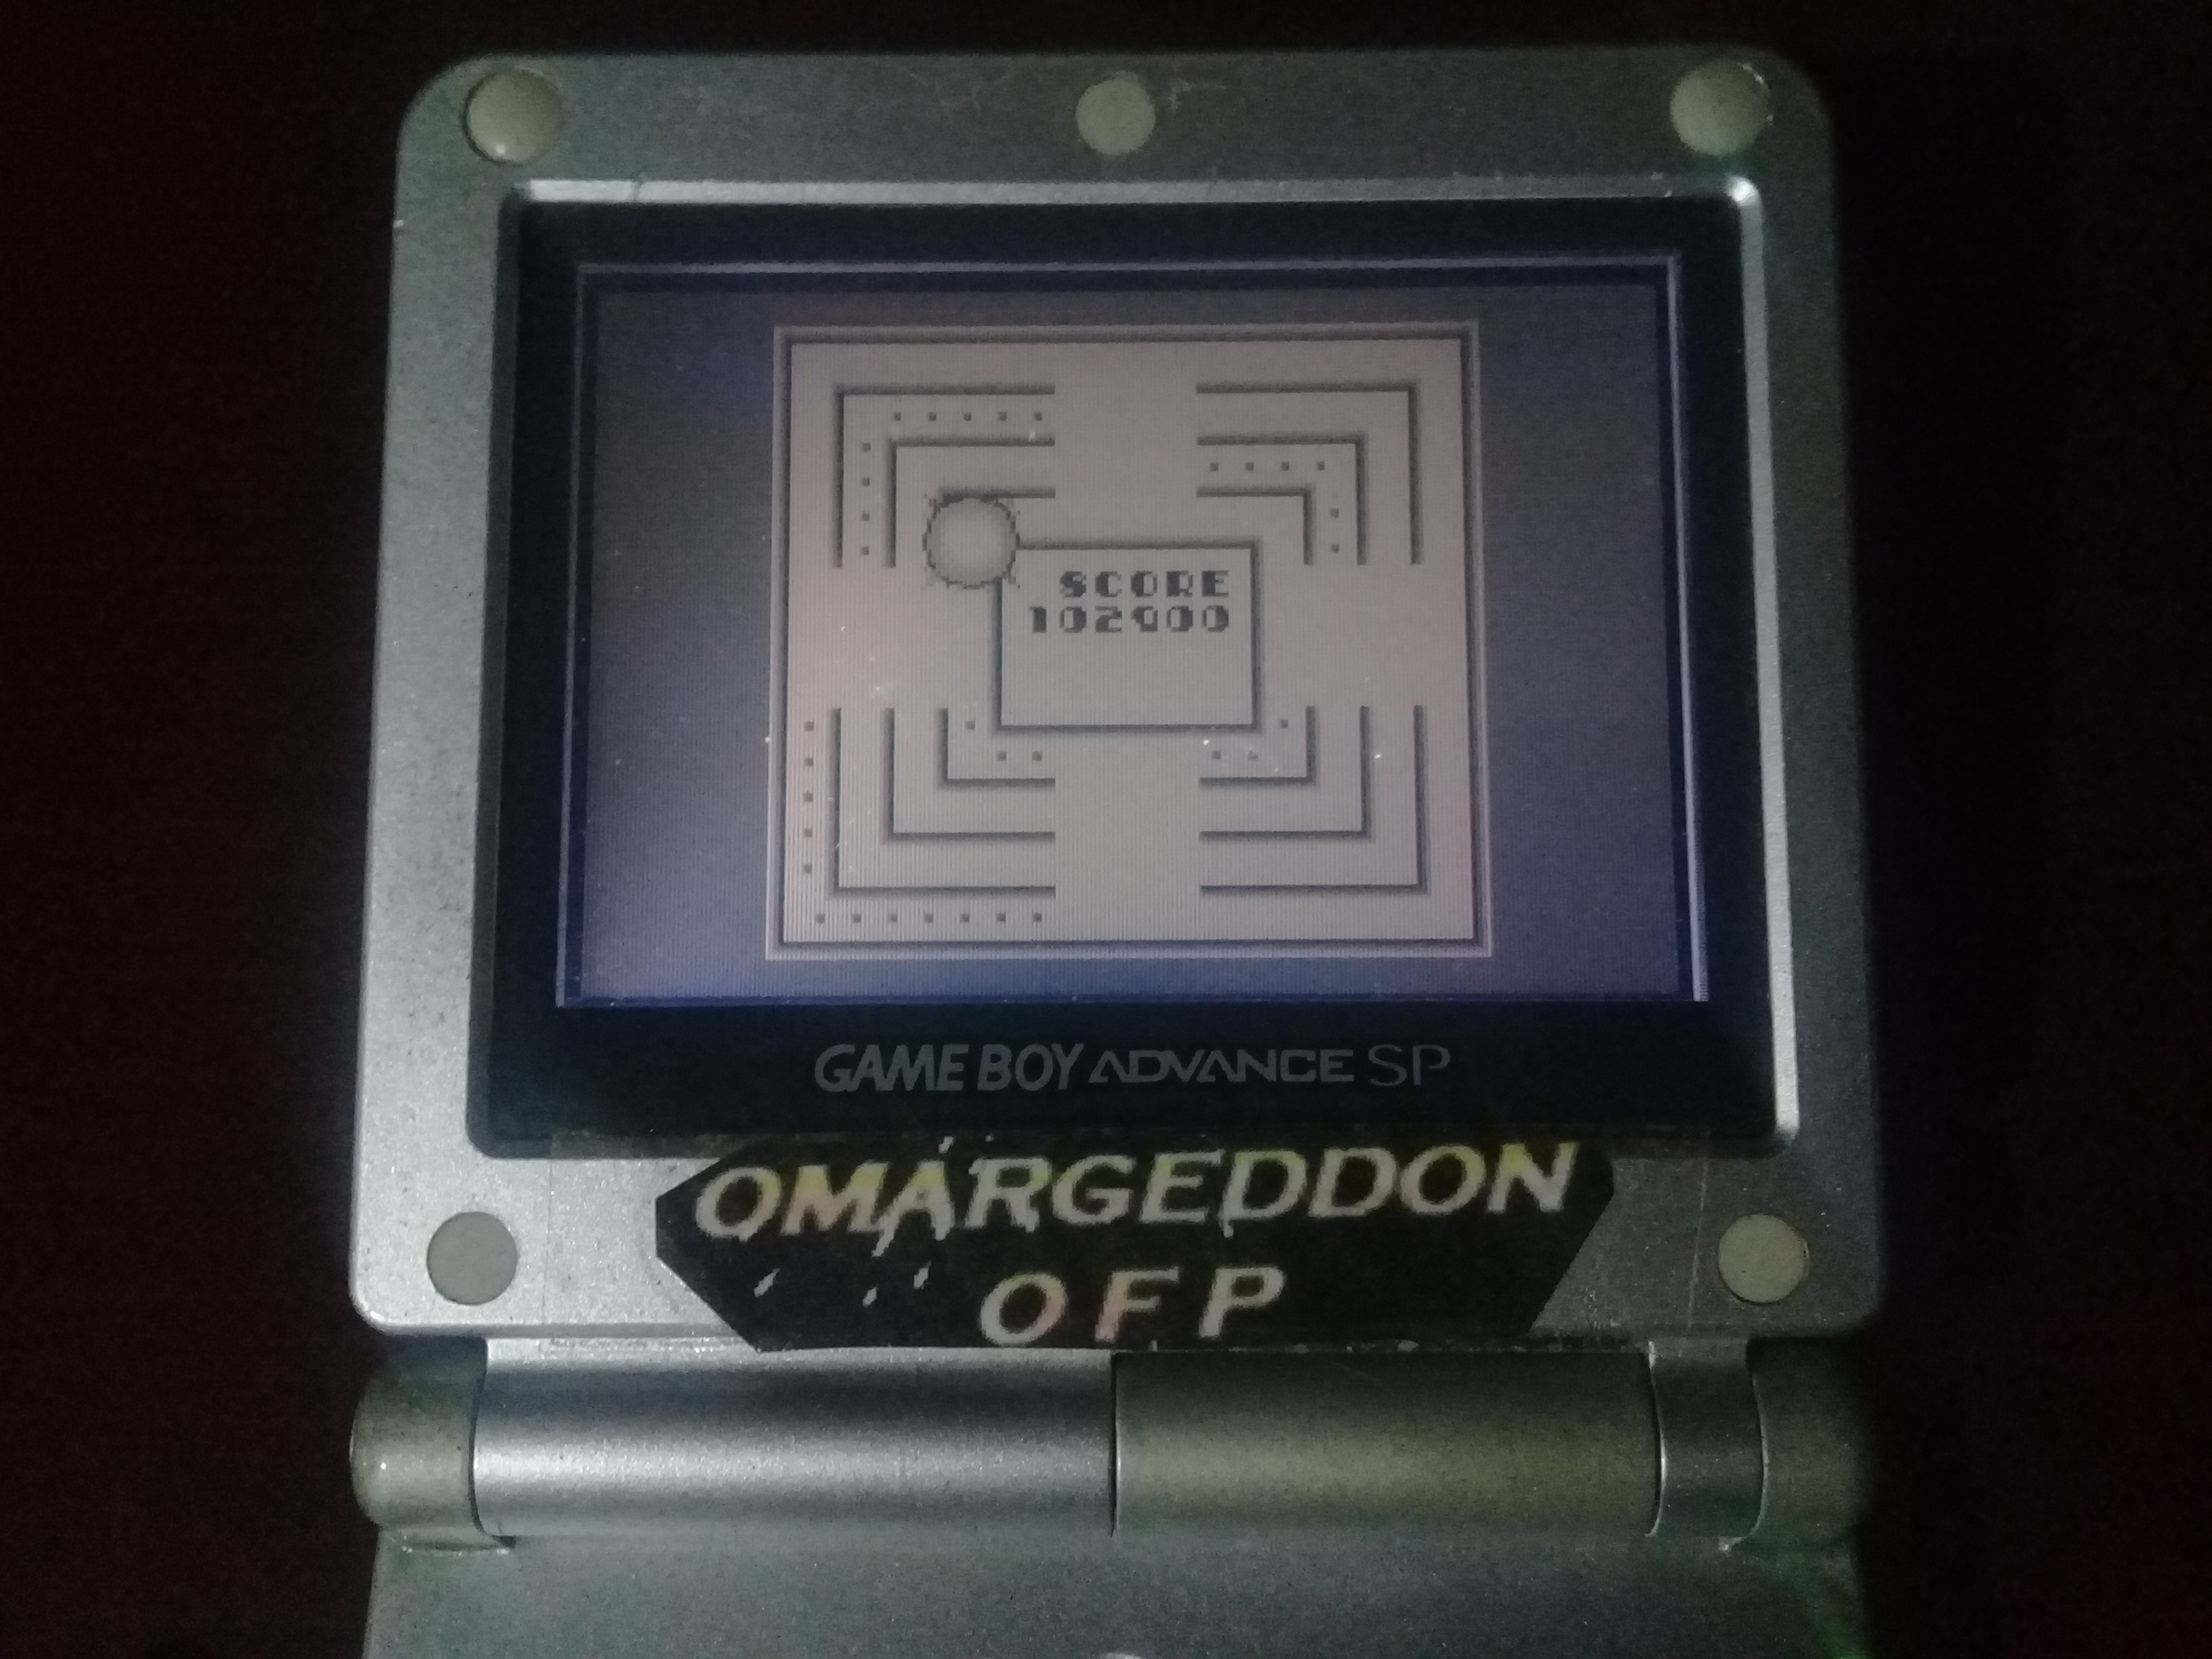 omargeddon: Power Racer (Game Boy) 102,900 points on 2019-04-16 21:53:29